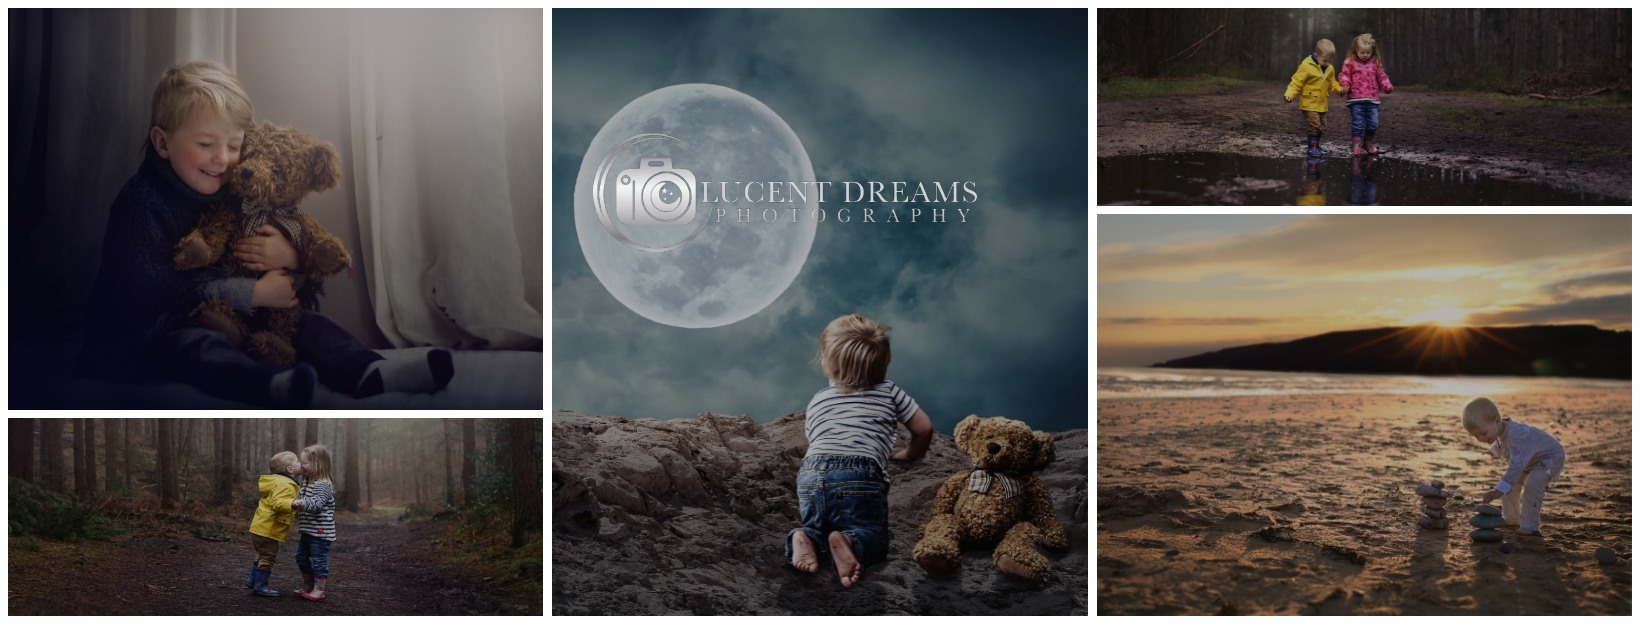 Lucent Dream Photography's logo